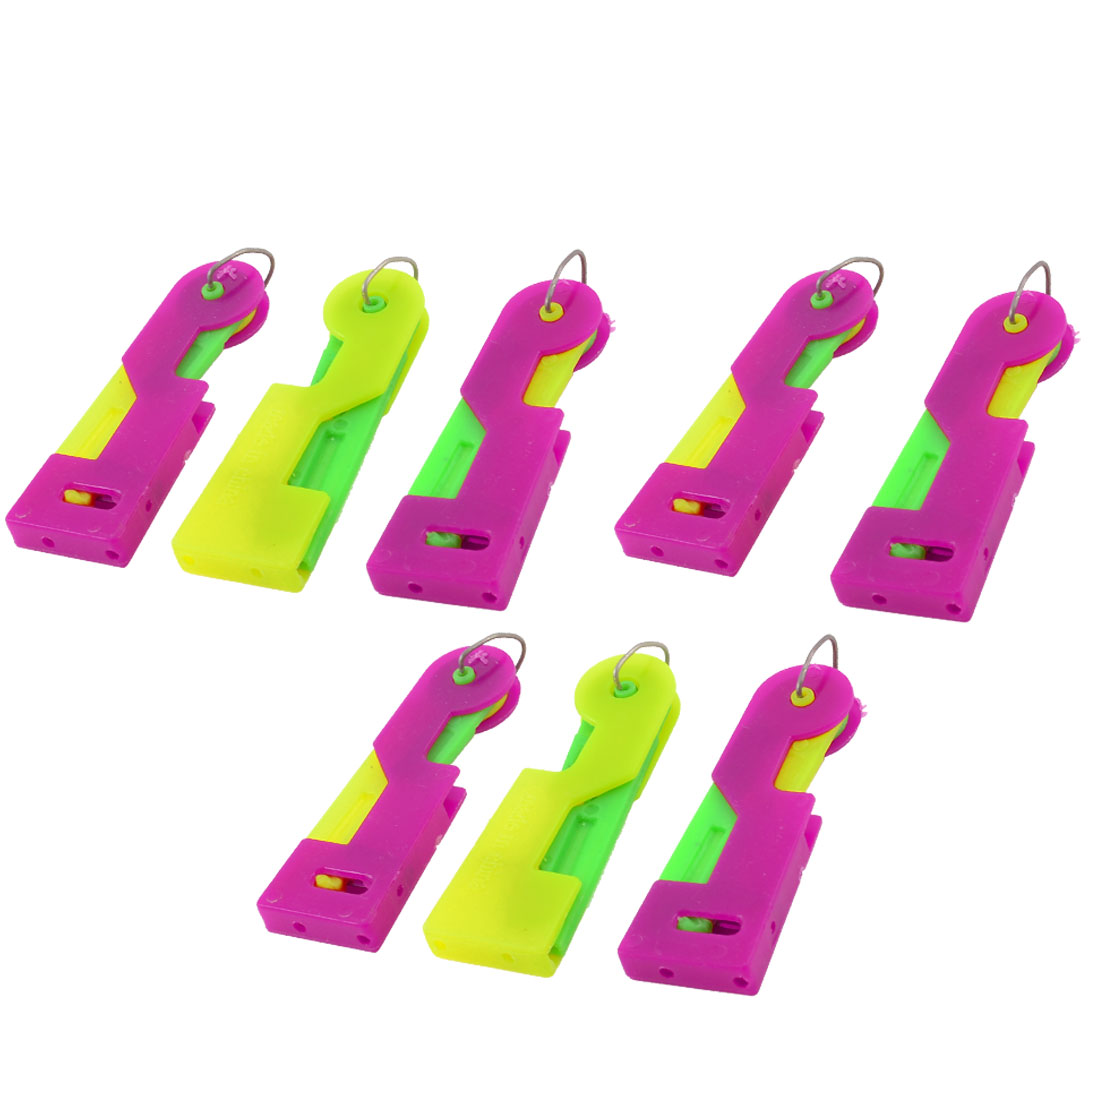 8 Pcs Plastic Assorted Color Inserter Sewing Needle Threader